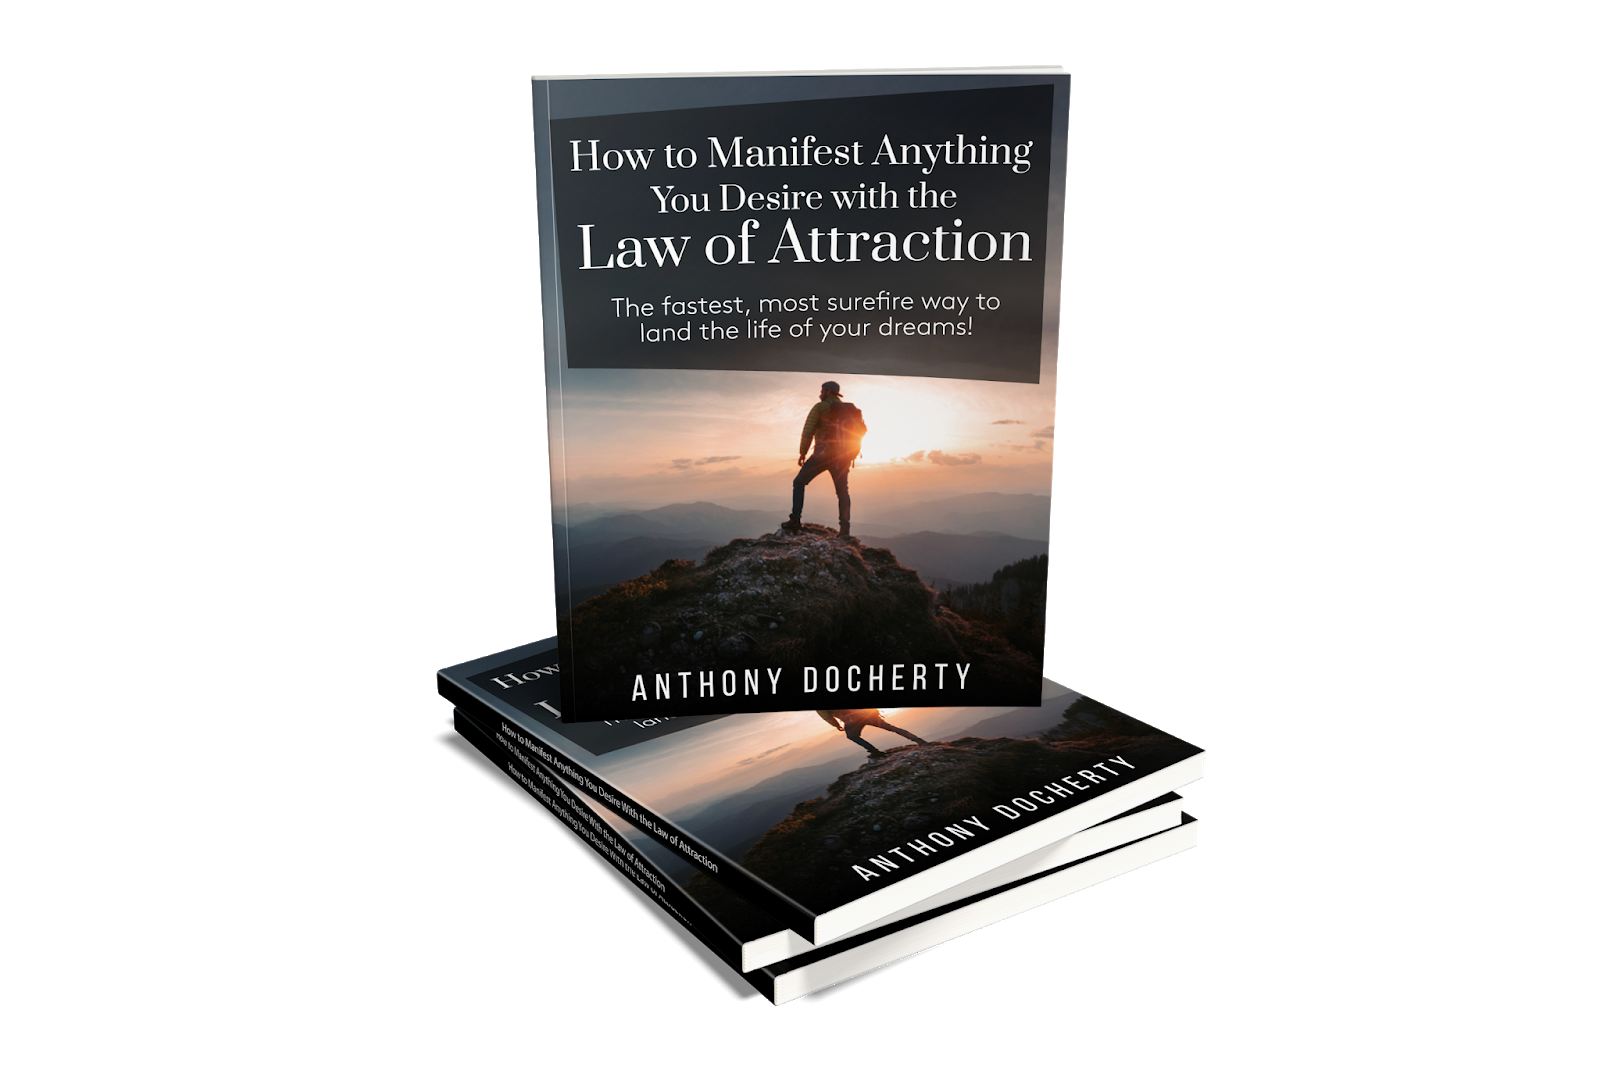 How to Manifest Anything You Desire with the Law of Attraction